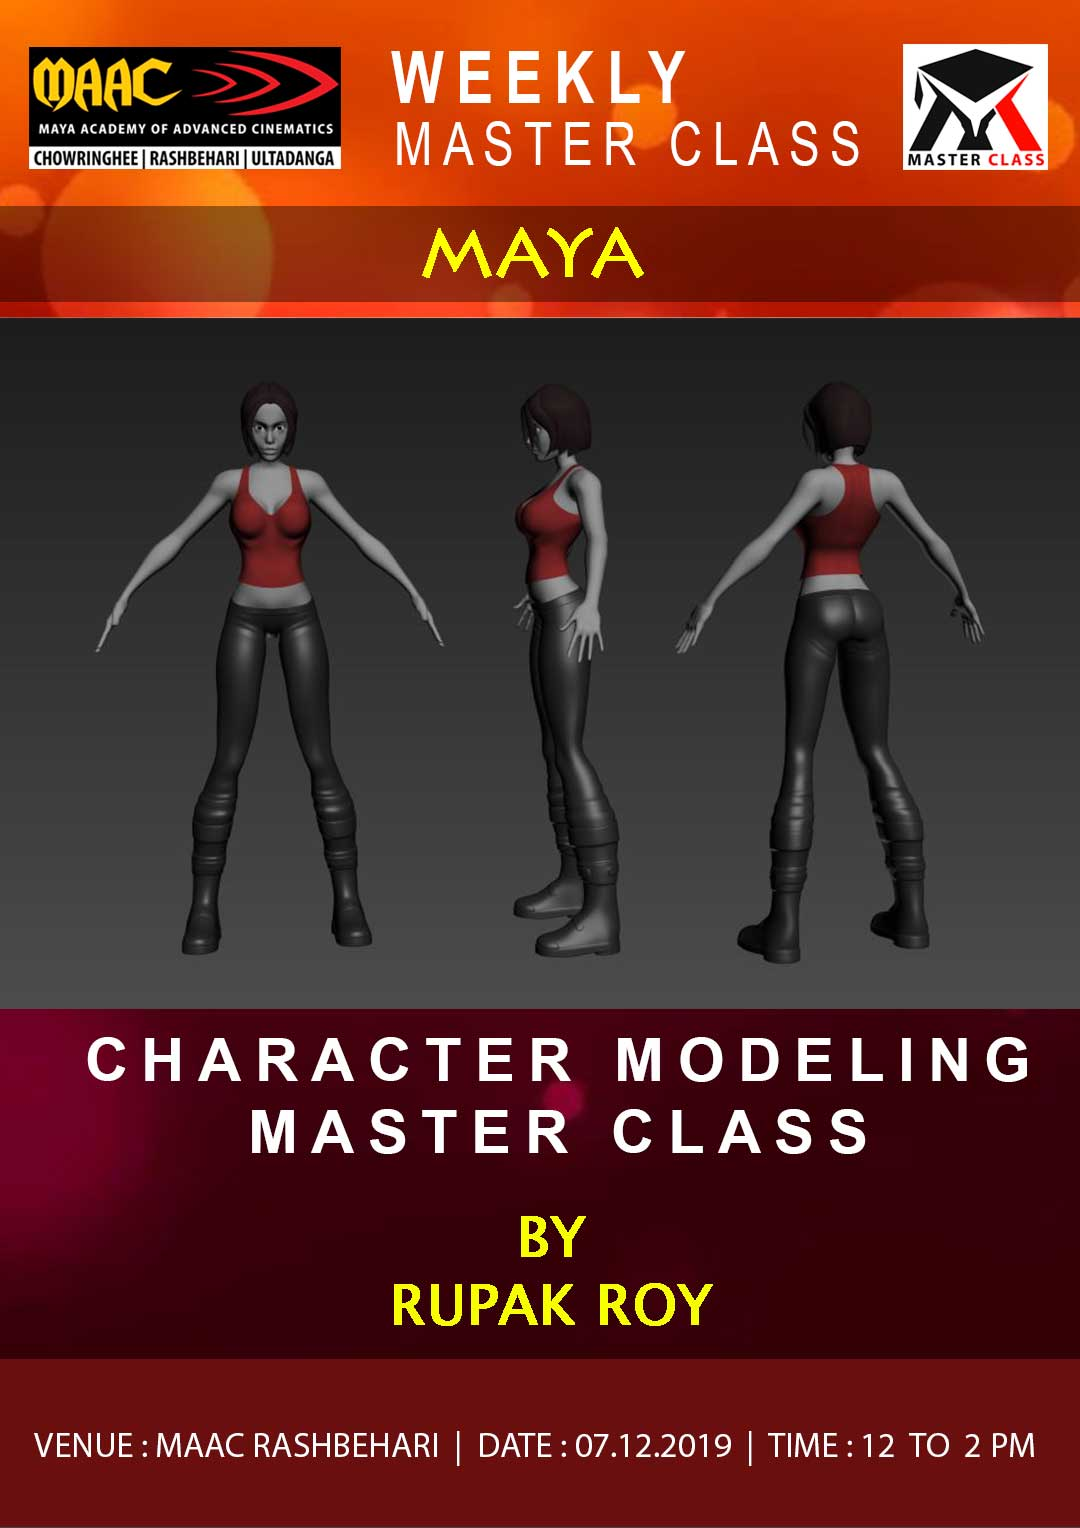 Weekly Master Class on Character Modeling in Maya